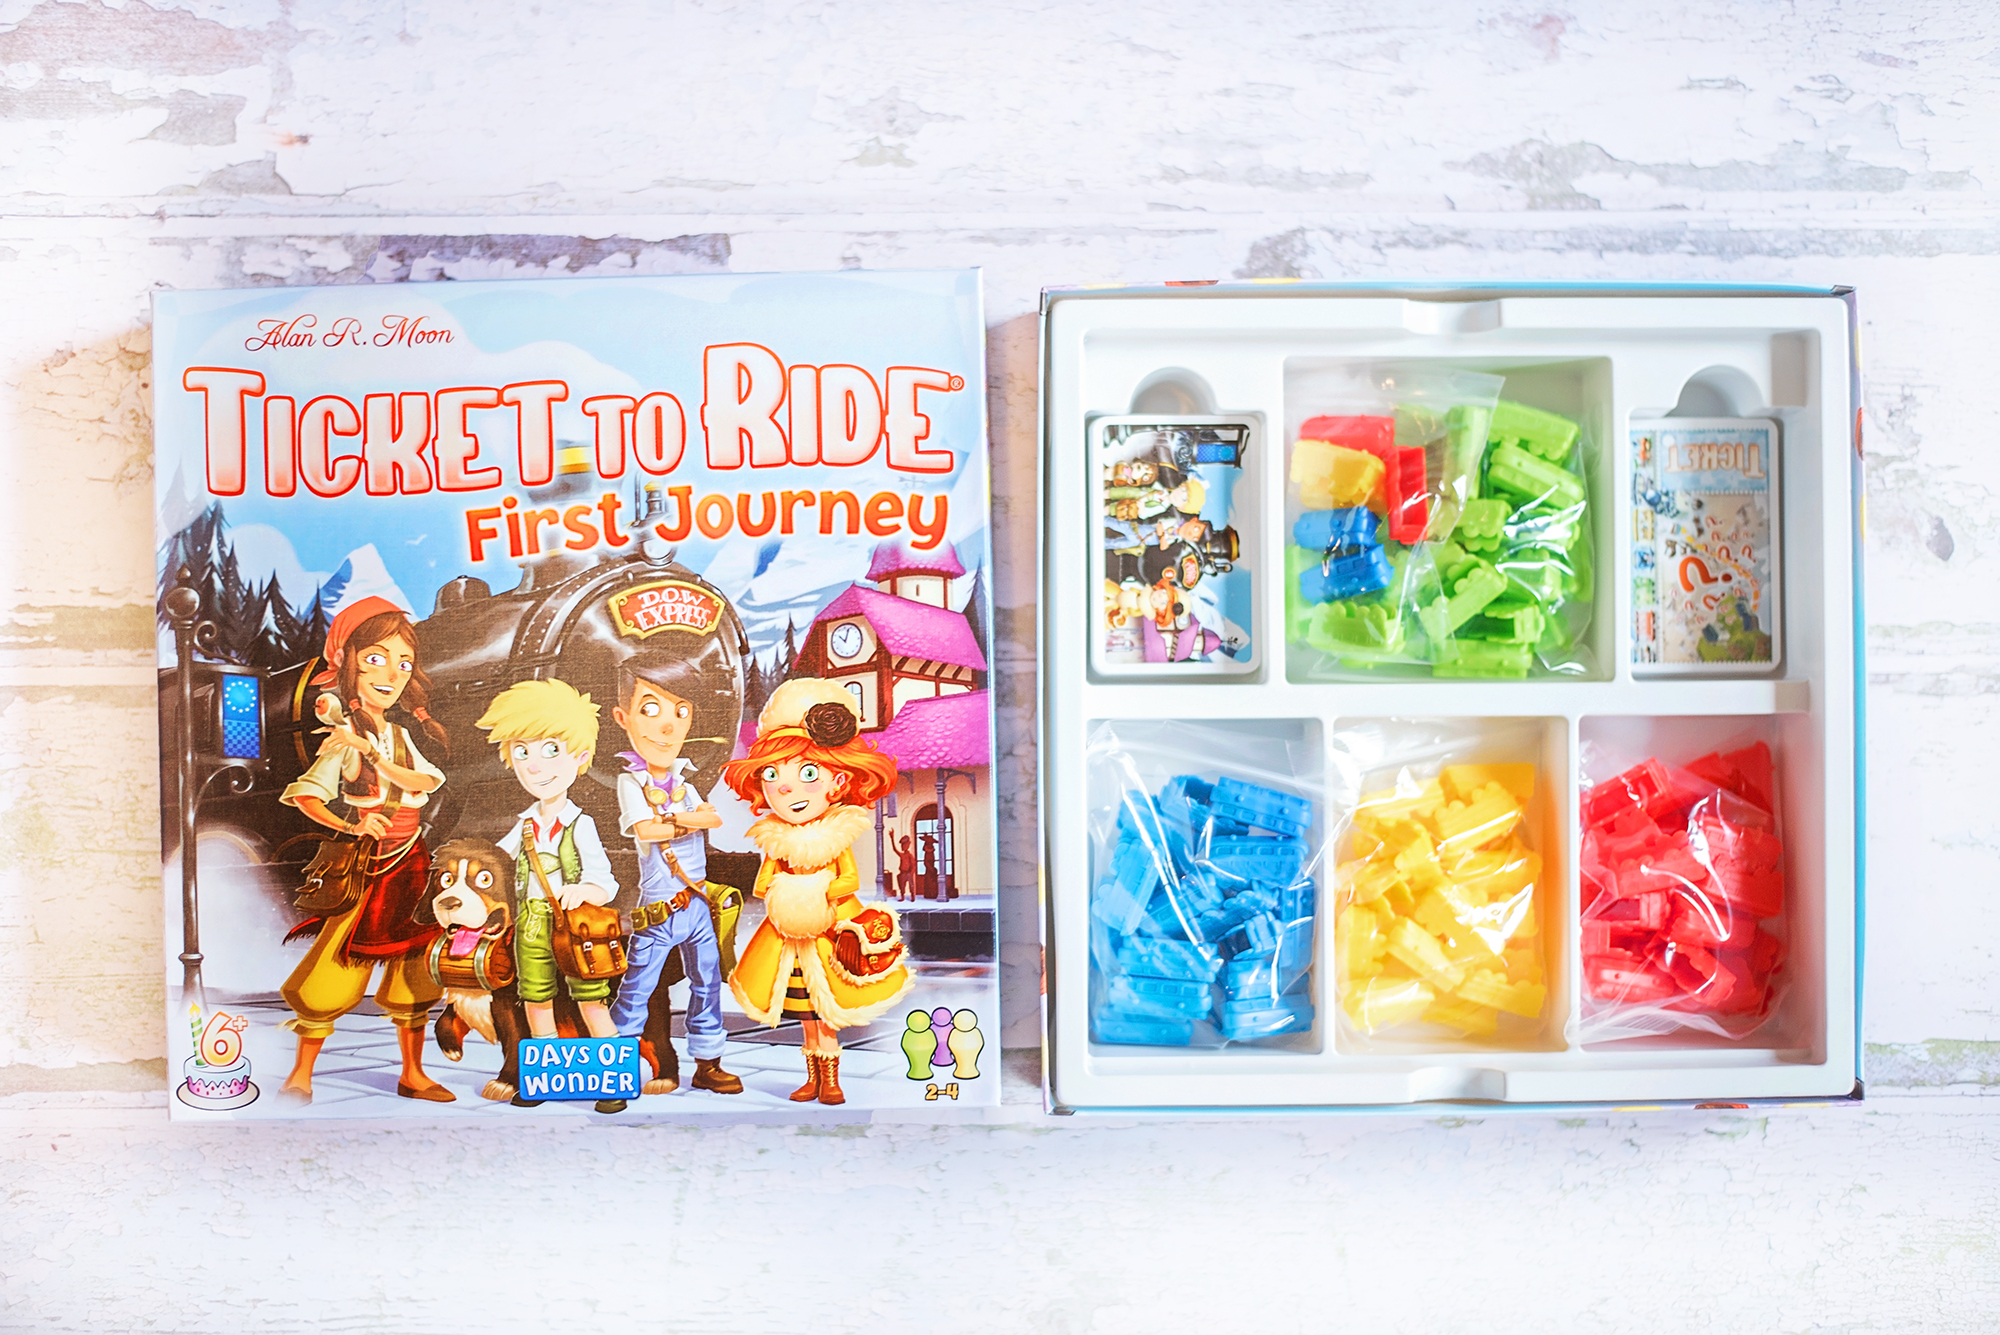 Ticket to Ride Game First Journey Review Ticket to Ride: First Journey